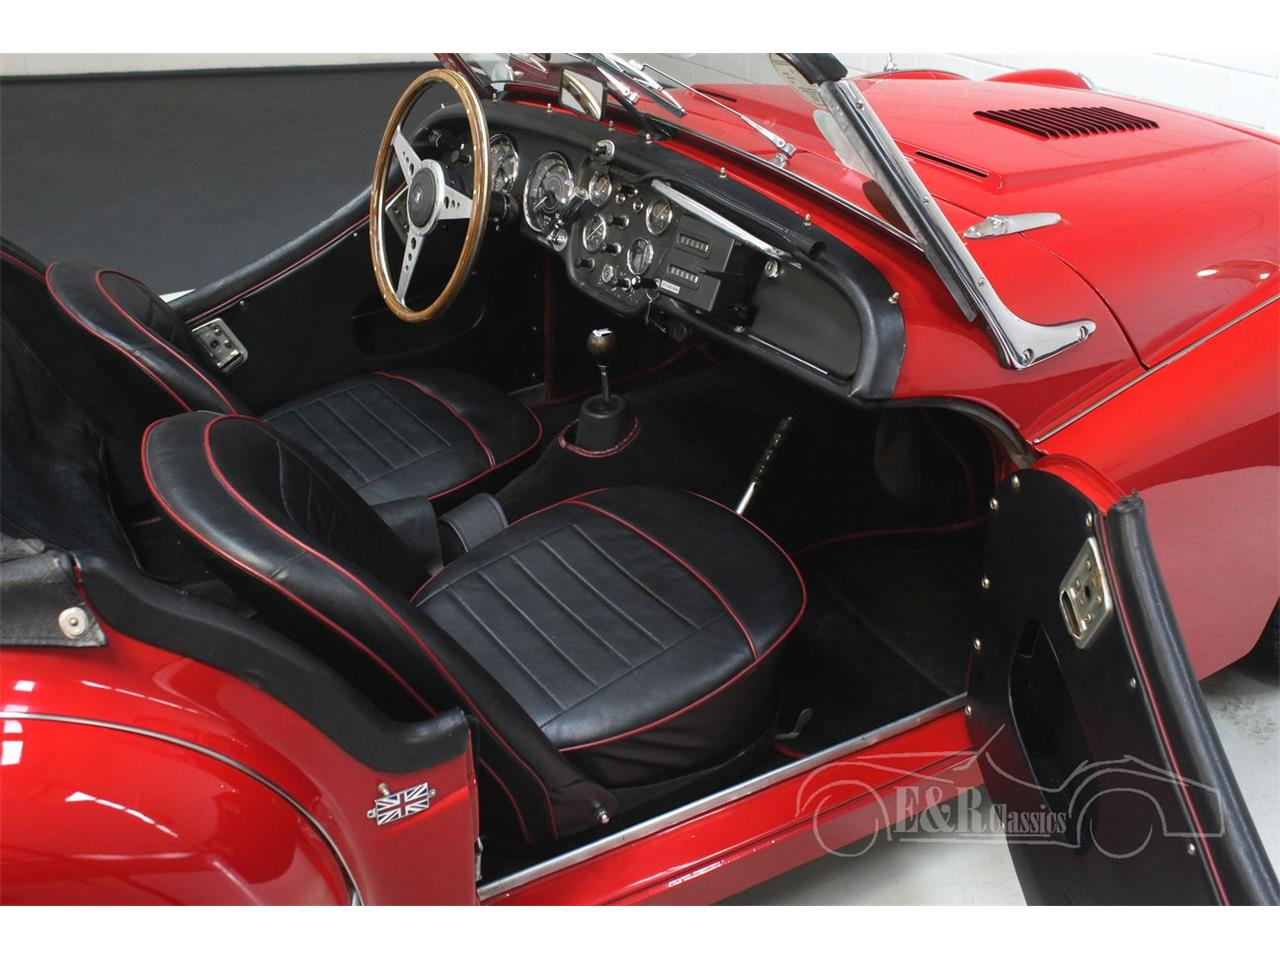 Large Picture of '60 Triumph TR3A - $41,400.00 Offered by E & R Classics - Q31H